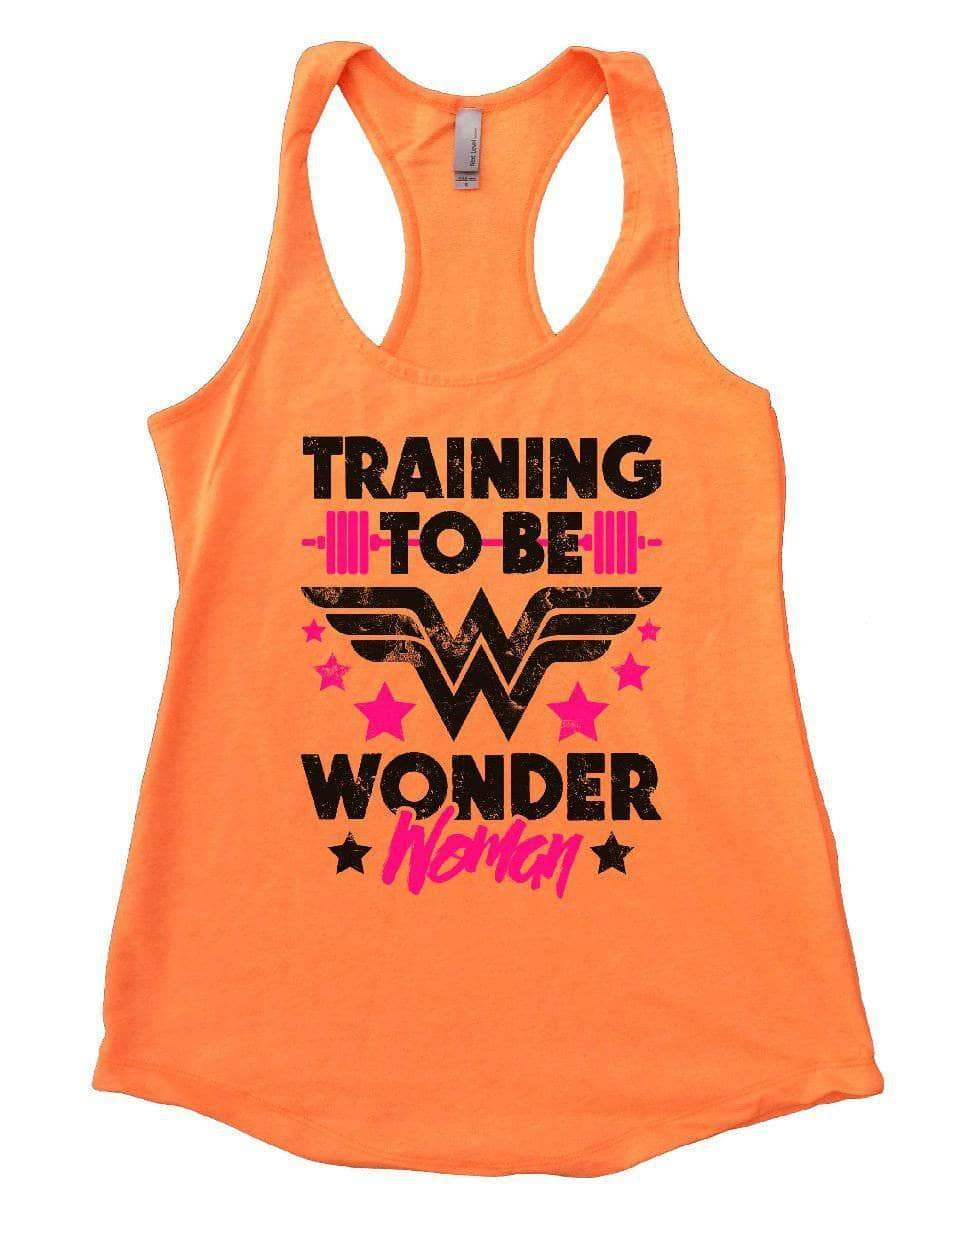 15fa332d1640c1 ... TRAINING TO BE WONDER Woman Womens Workout Tank Top Small Womens Tank  Tops Neon Orange ...